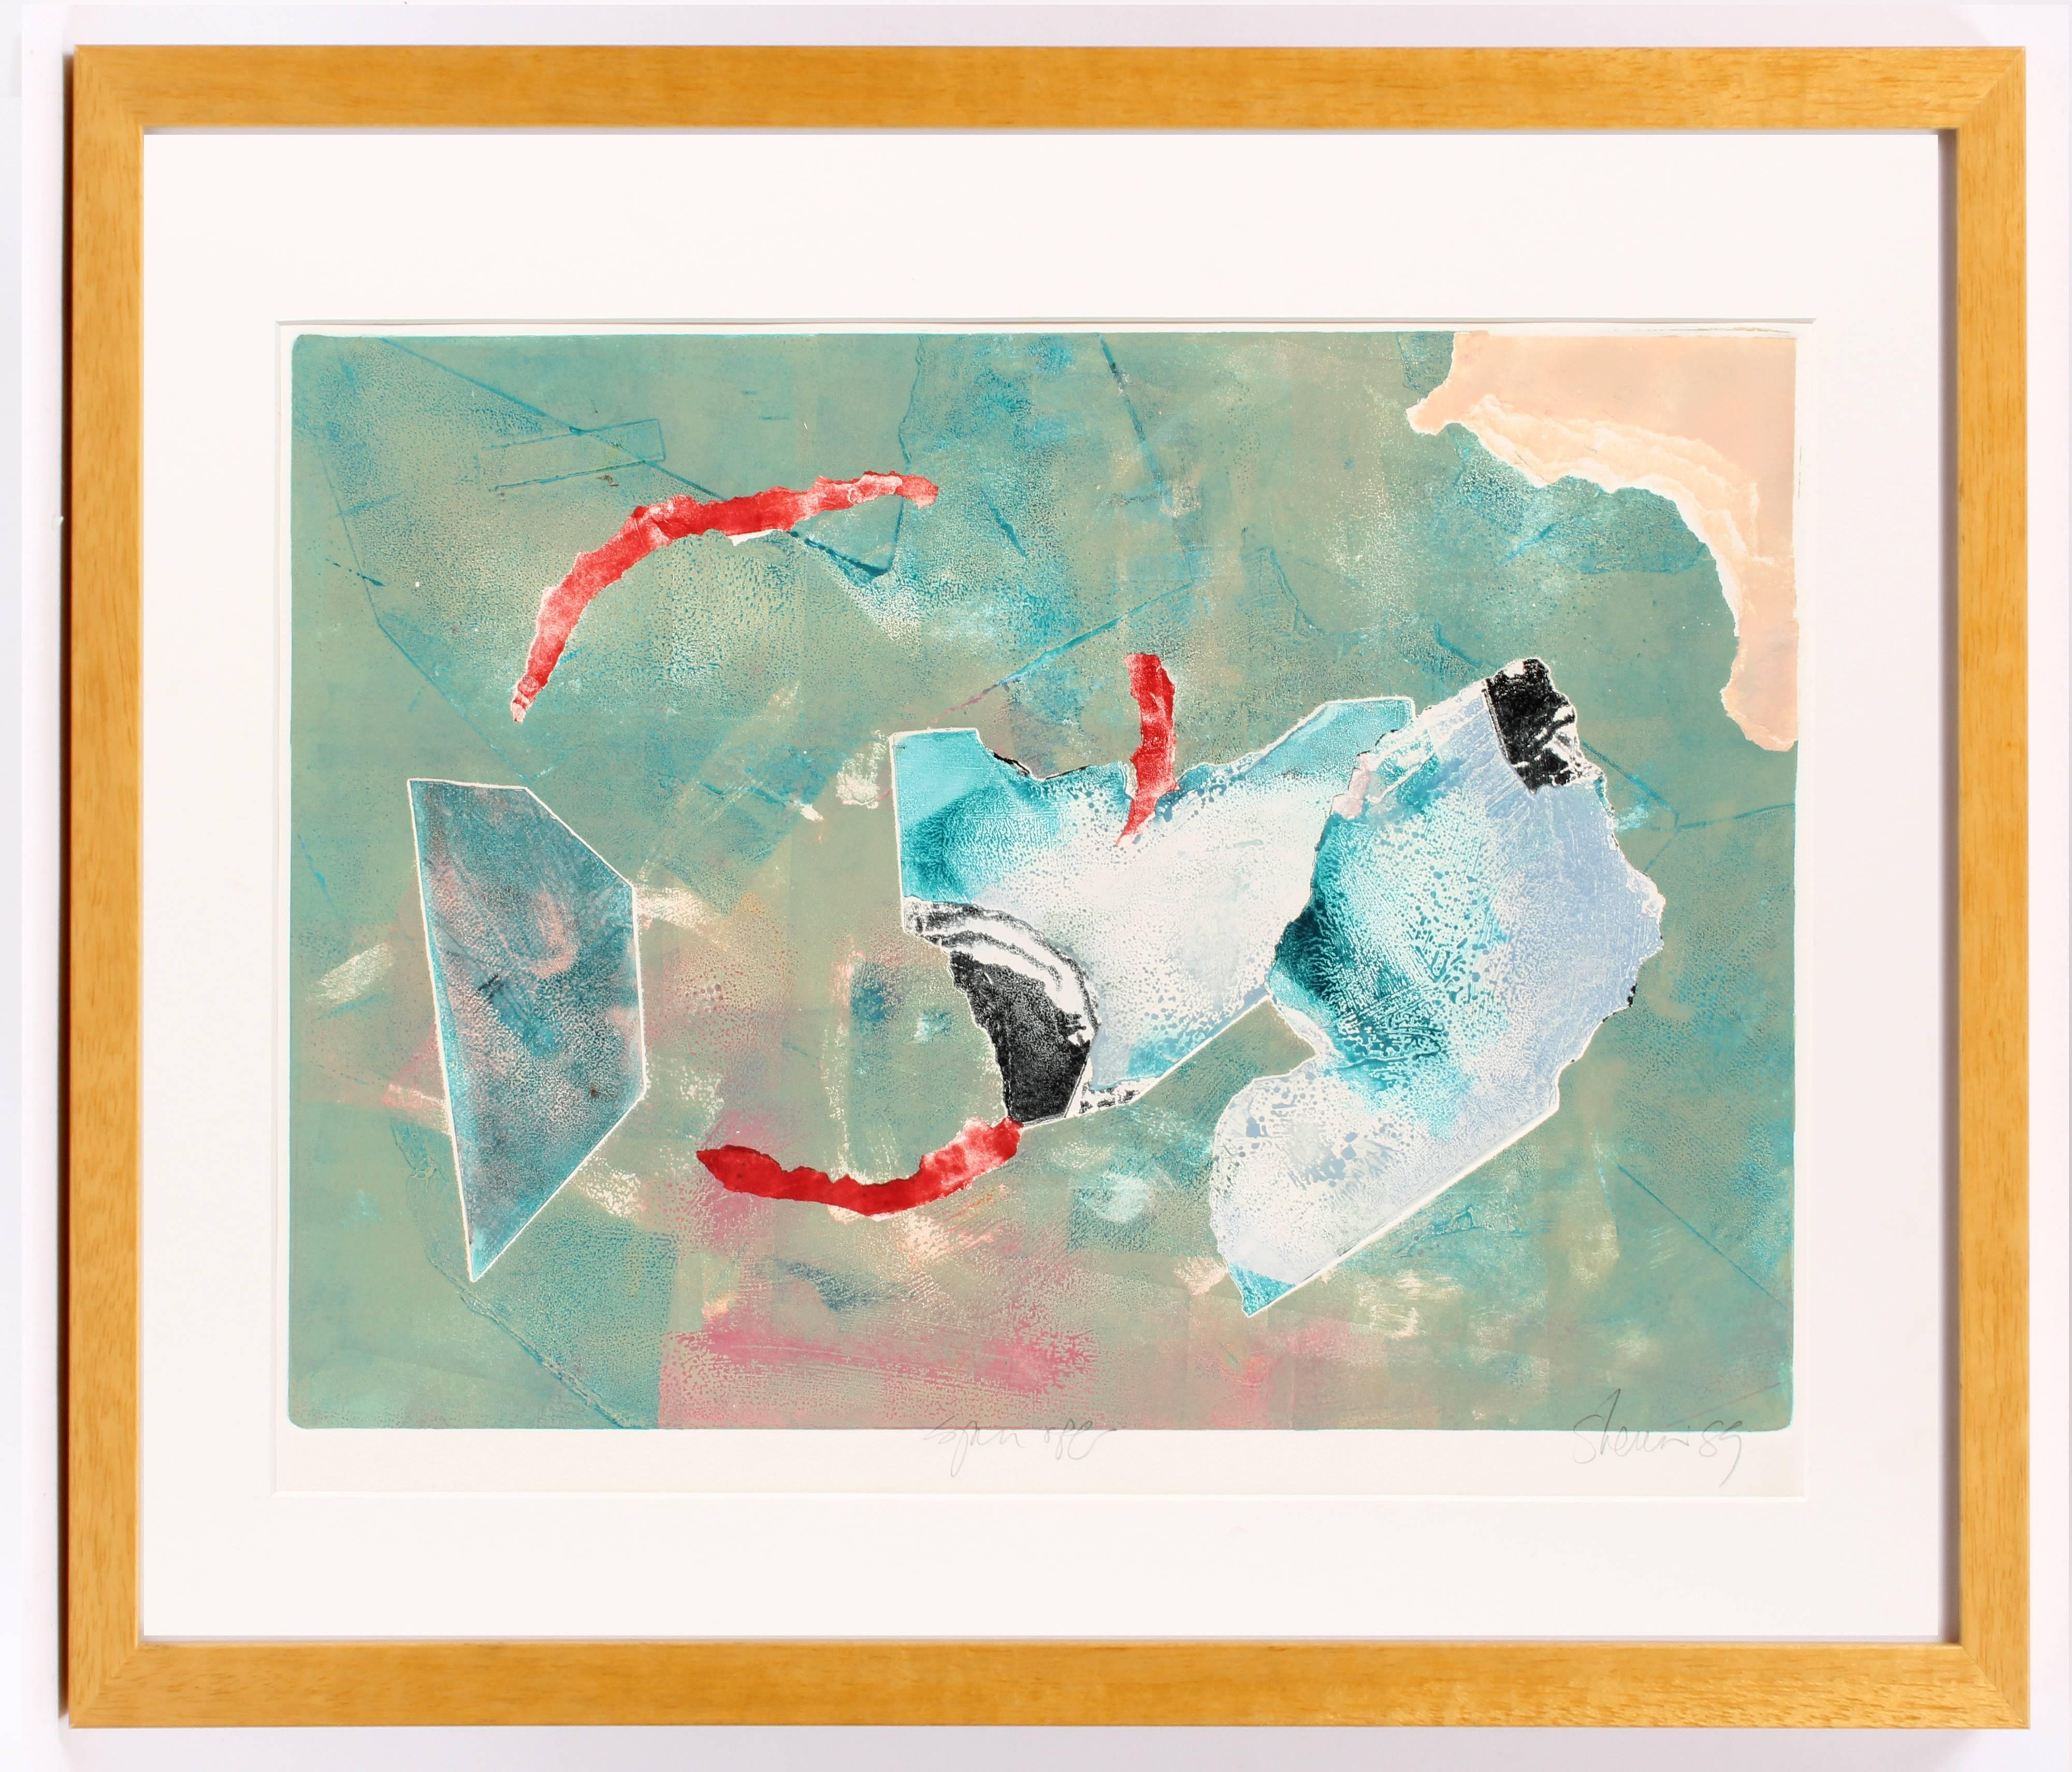 Untitled (Turquoise and Red)